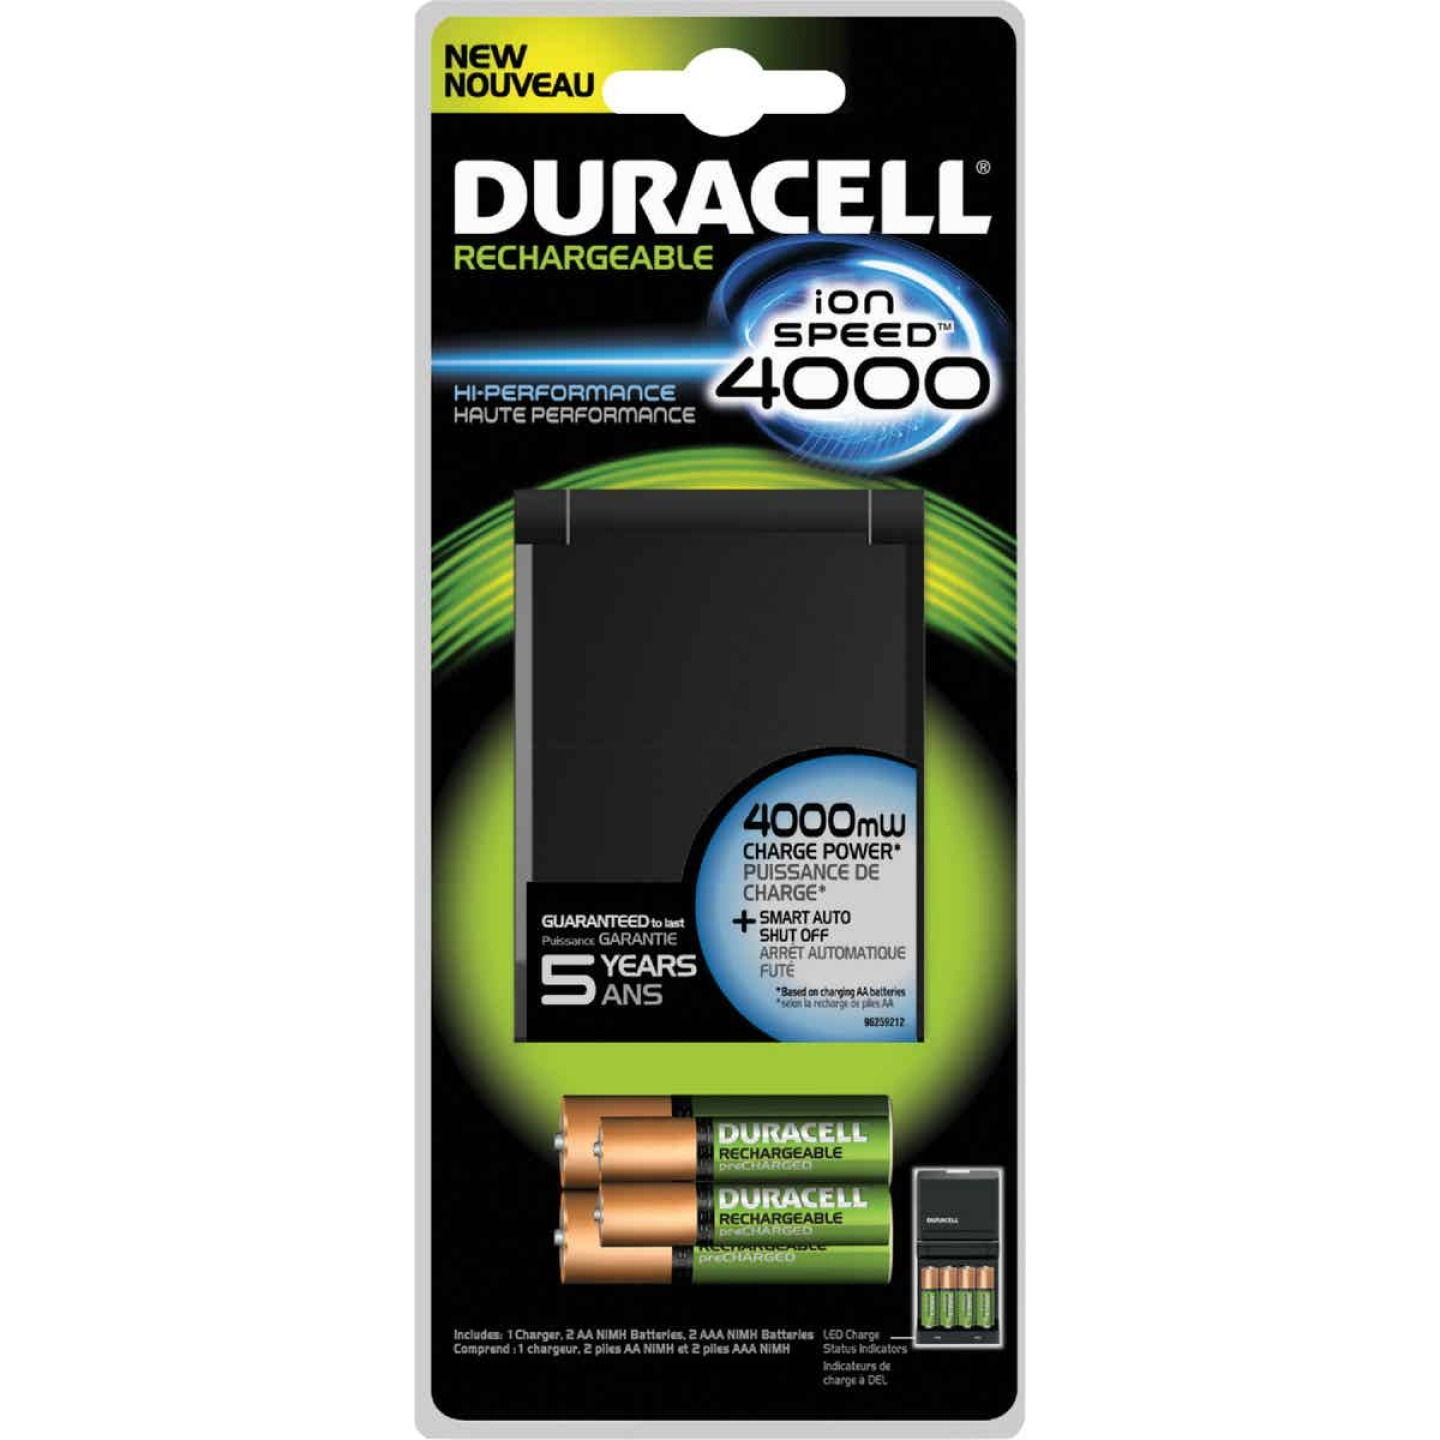 Duracell Ion Speed 4000 AA & AAA Ion Core NiMH Battery Charger Image 1